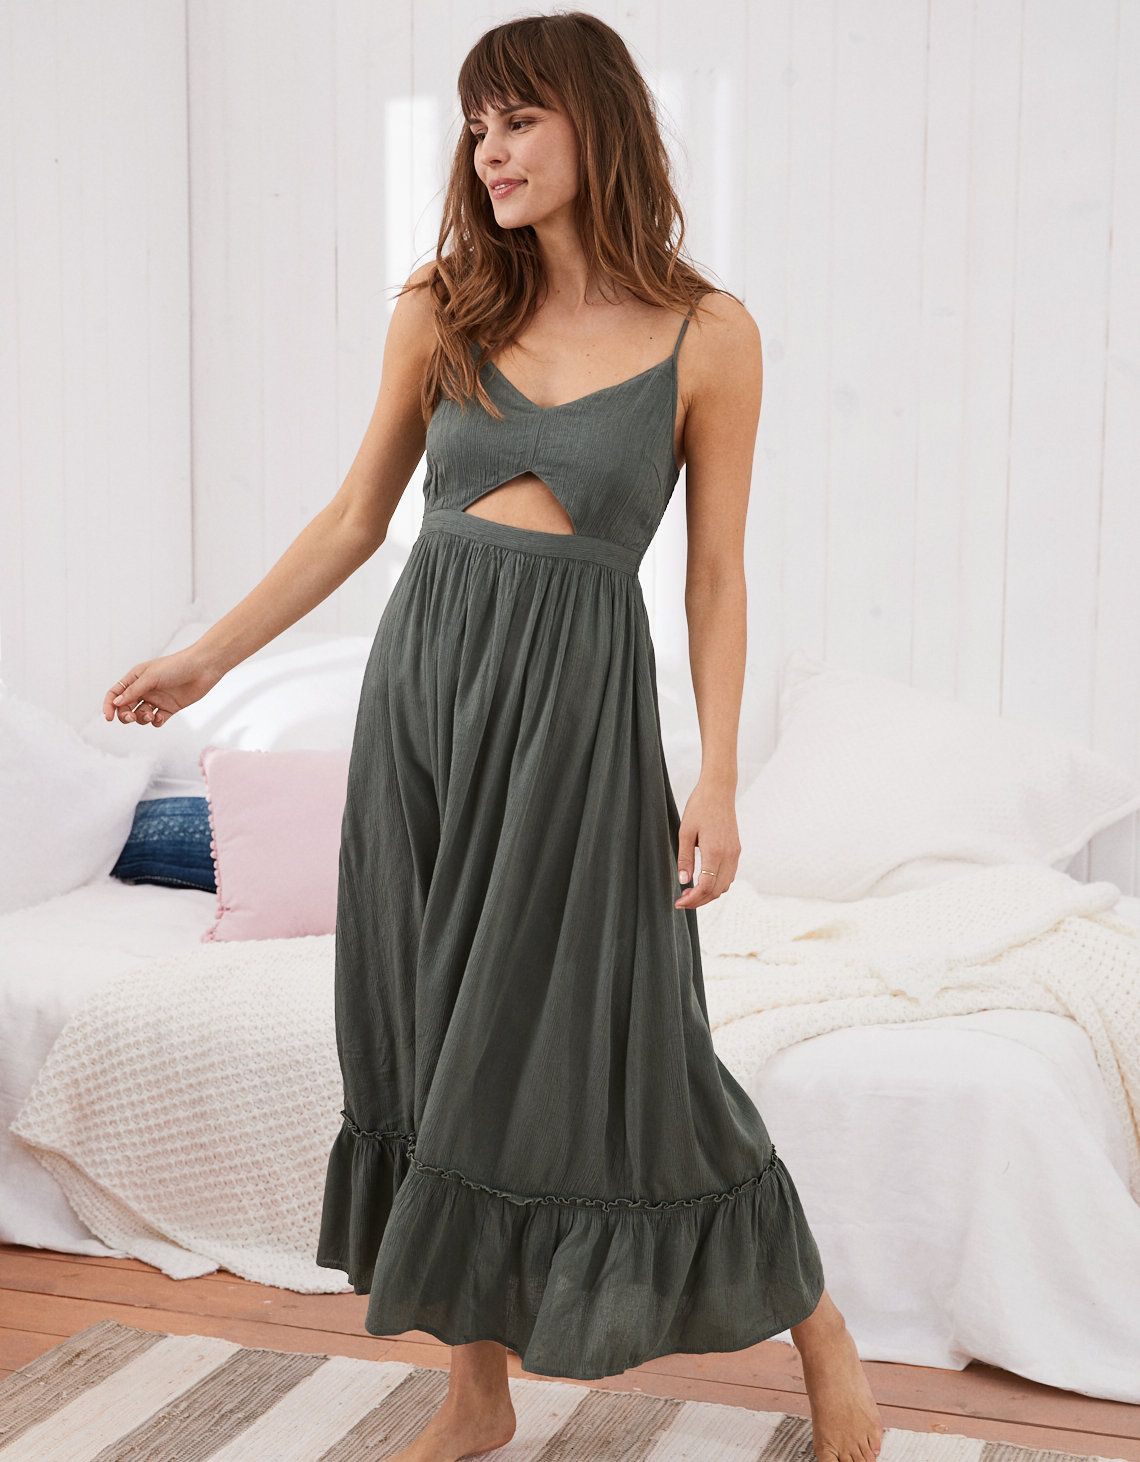 9d8b882e53 Aerie Cutout Maxi Dress, Royal Palm | Aerie for American Eagle ...